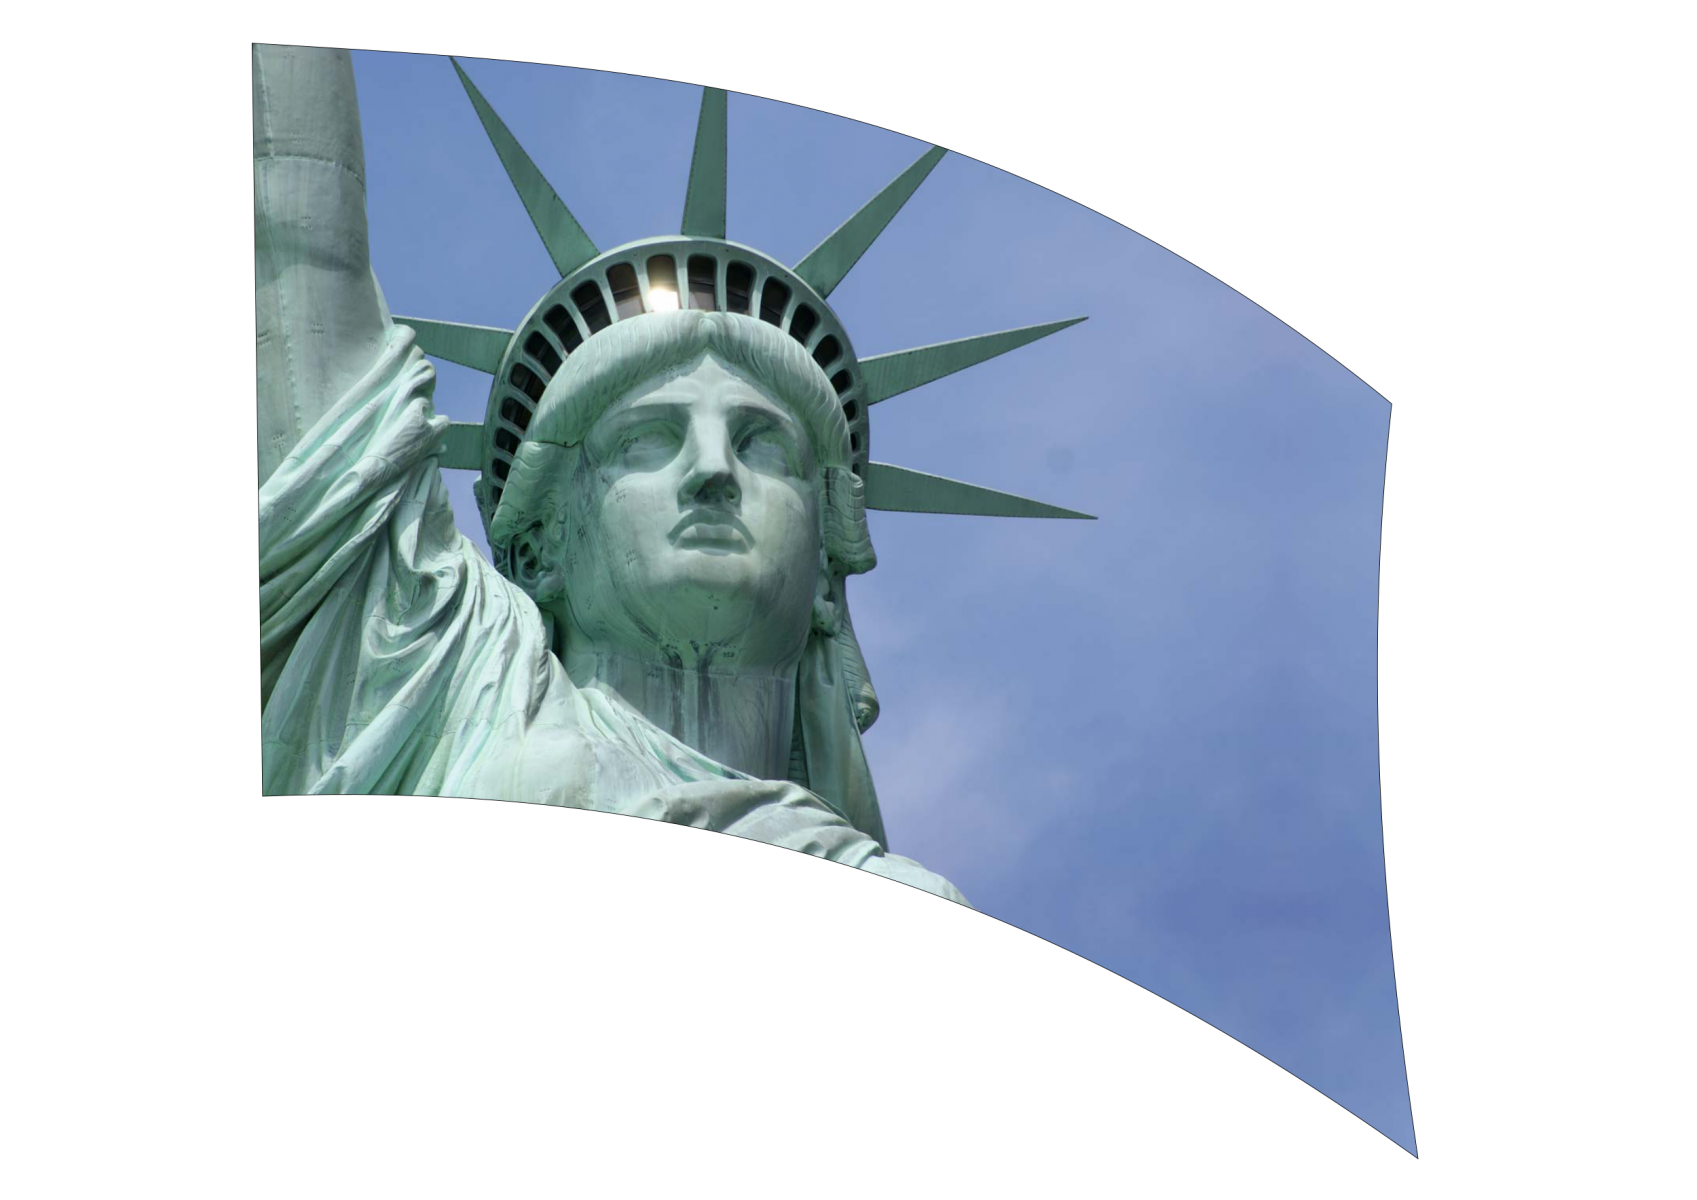 060303s - 36x54 Standard Statue of Liberty 1